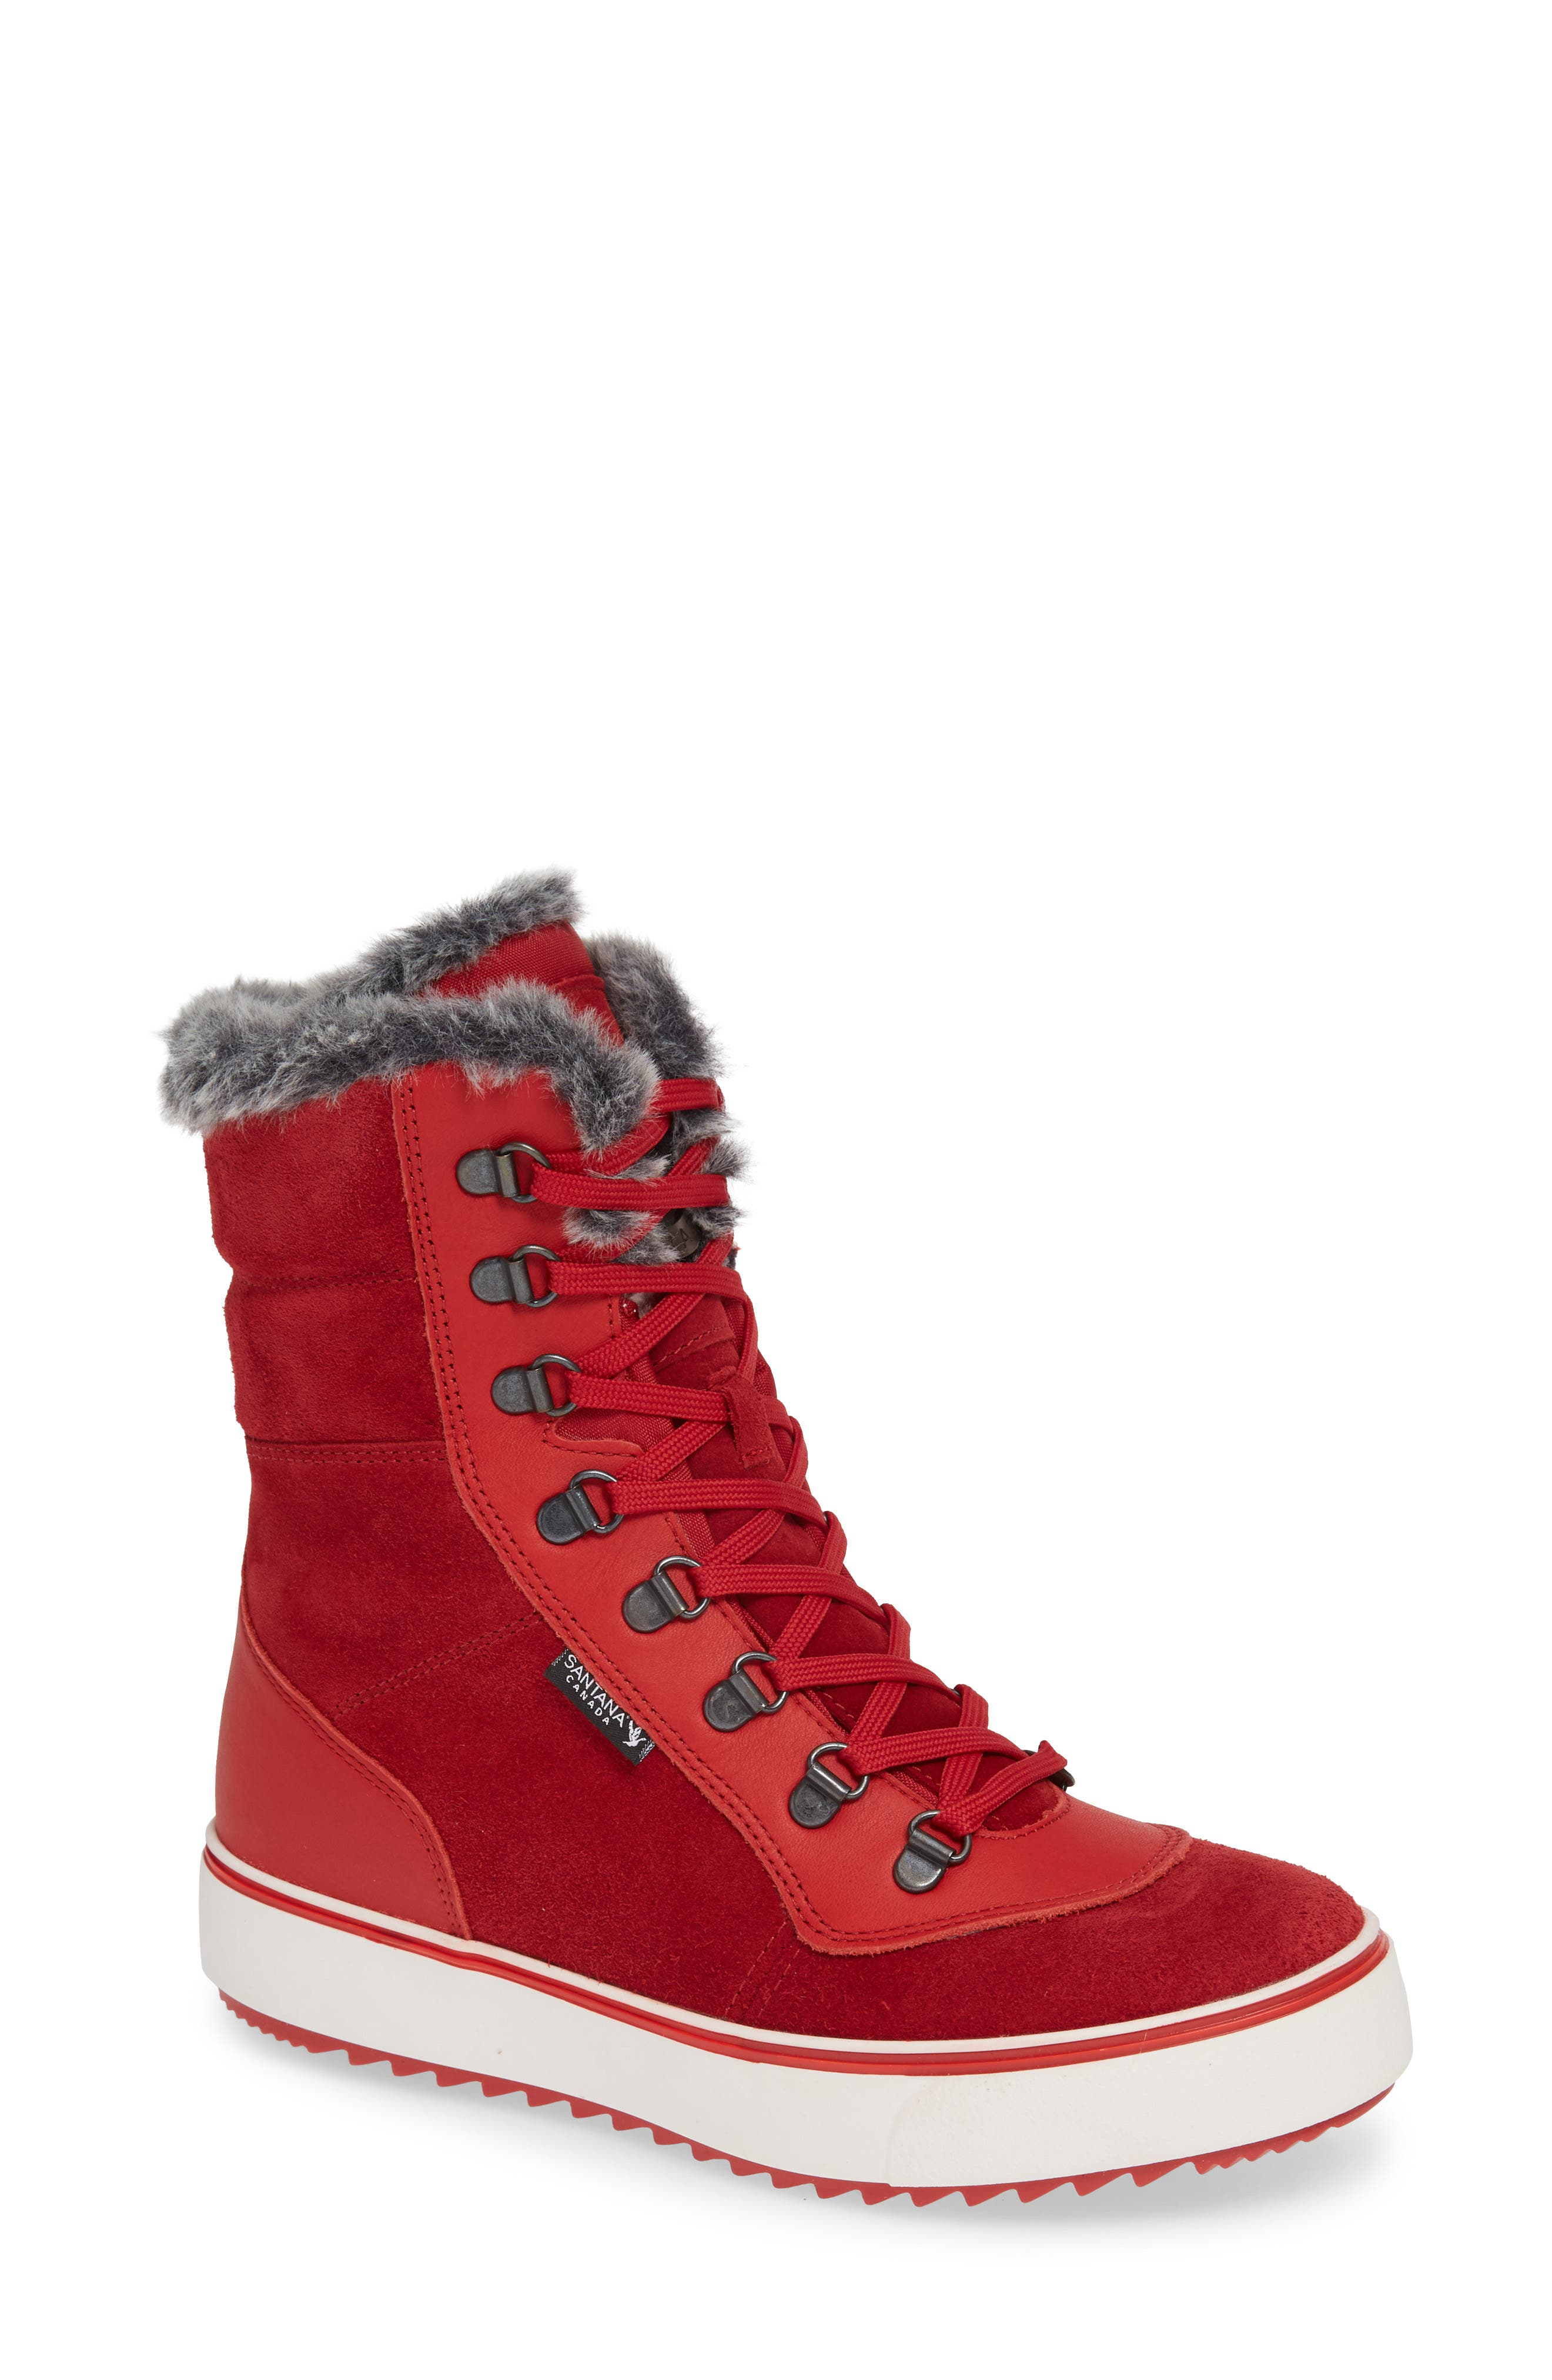 Santana Canada Mid Water Resistant Winter Boot, Red